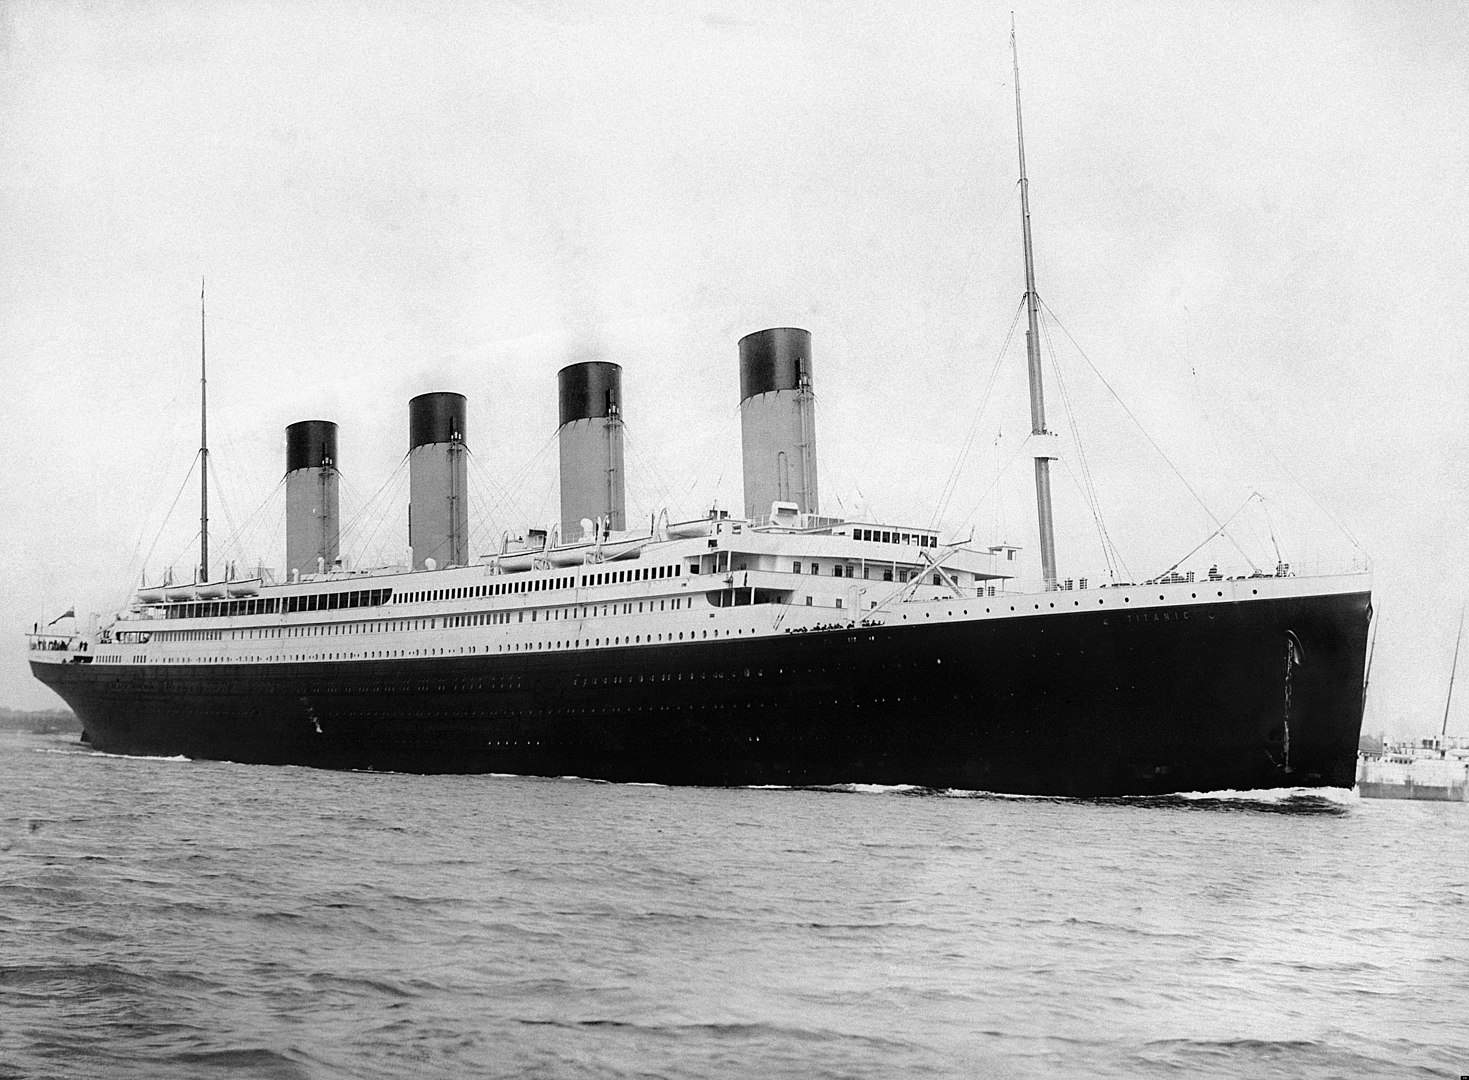 Titanic departing on its fateful journey, titanic facts, historical events facts